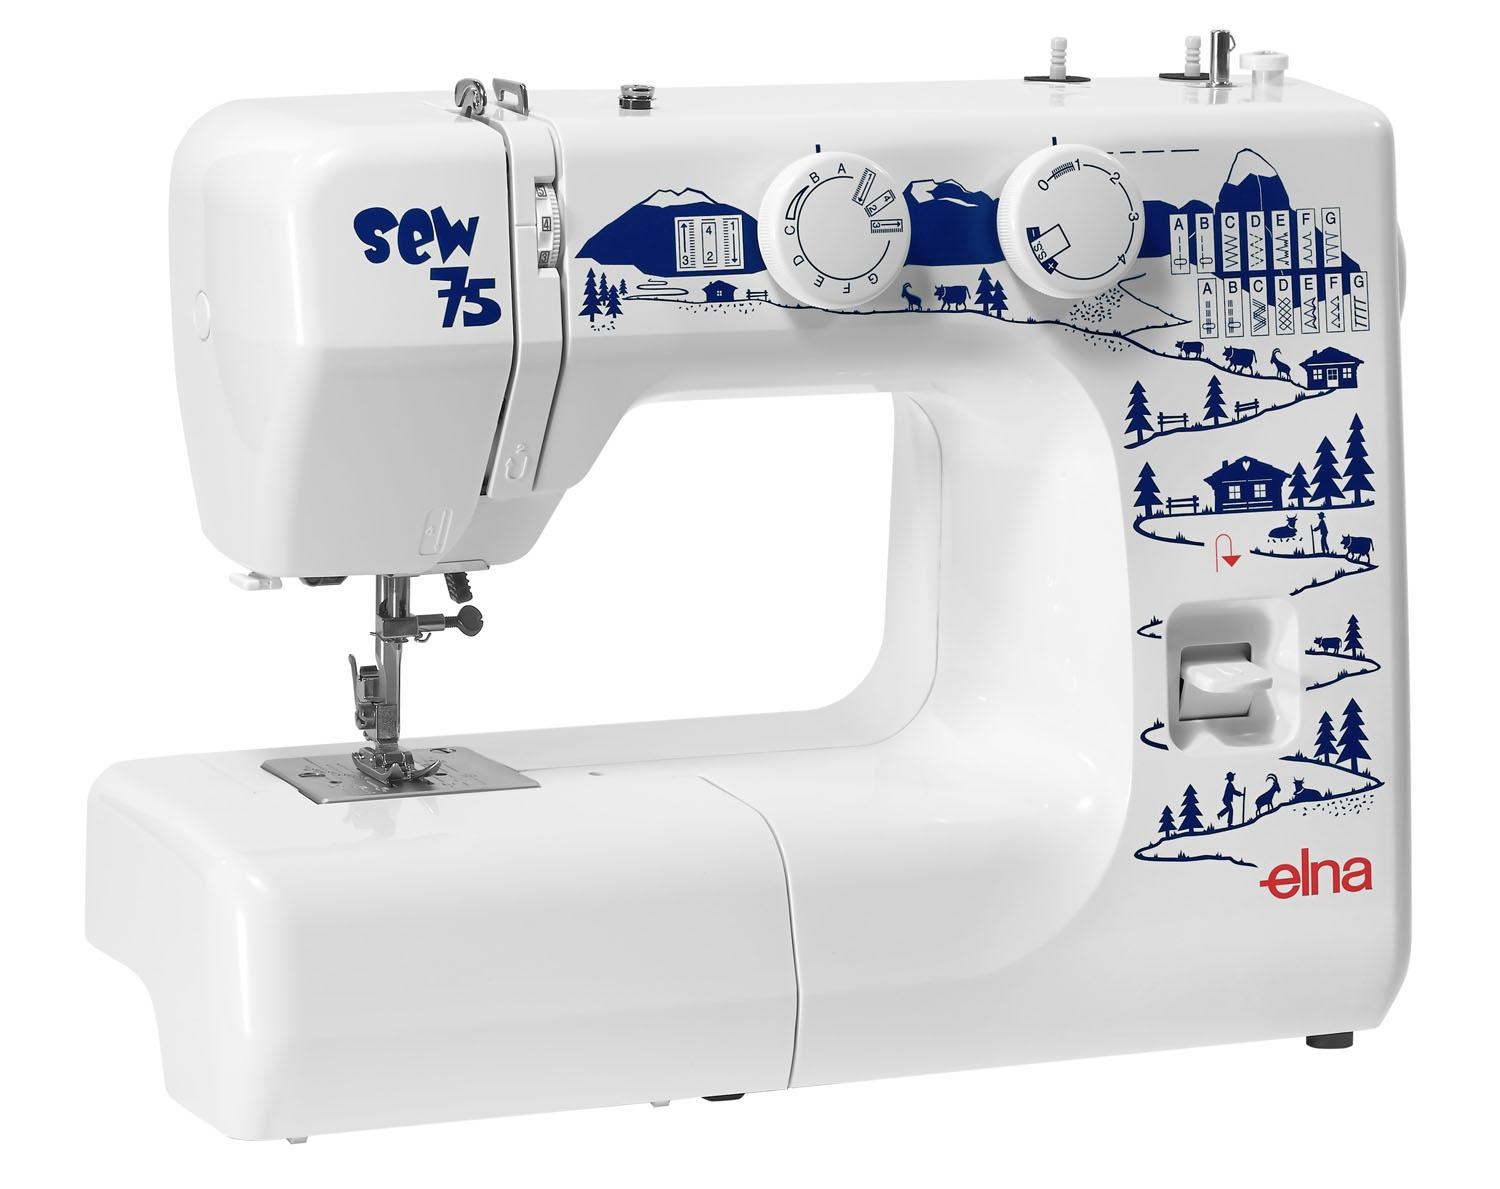 elna sewing machine